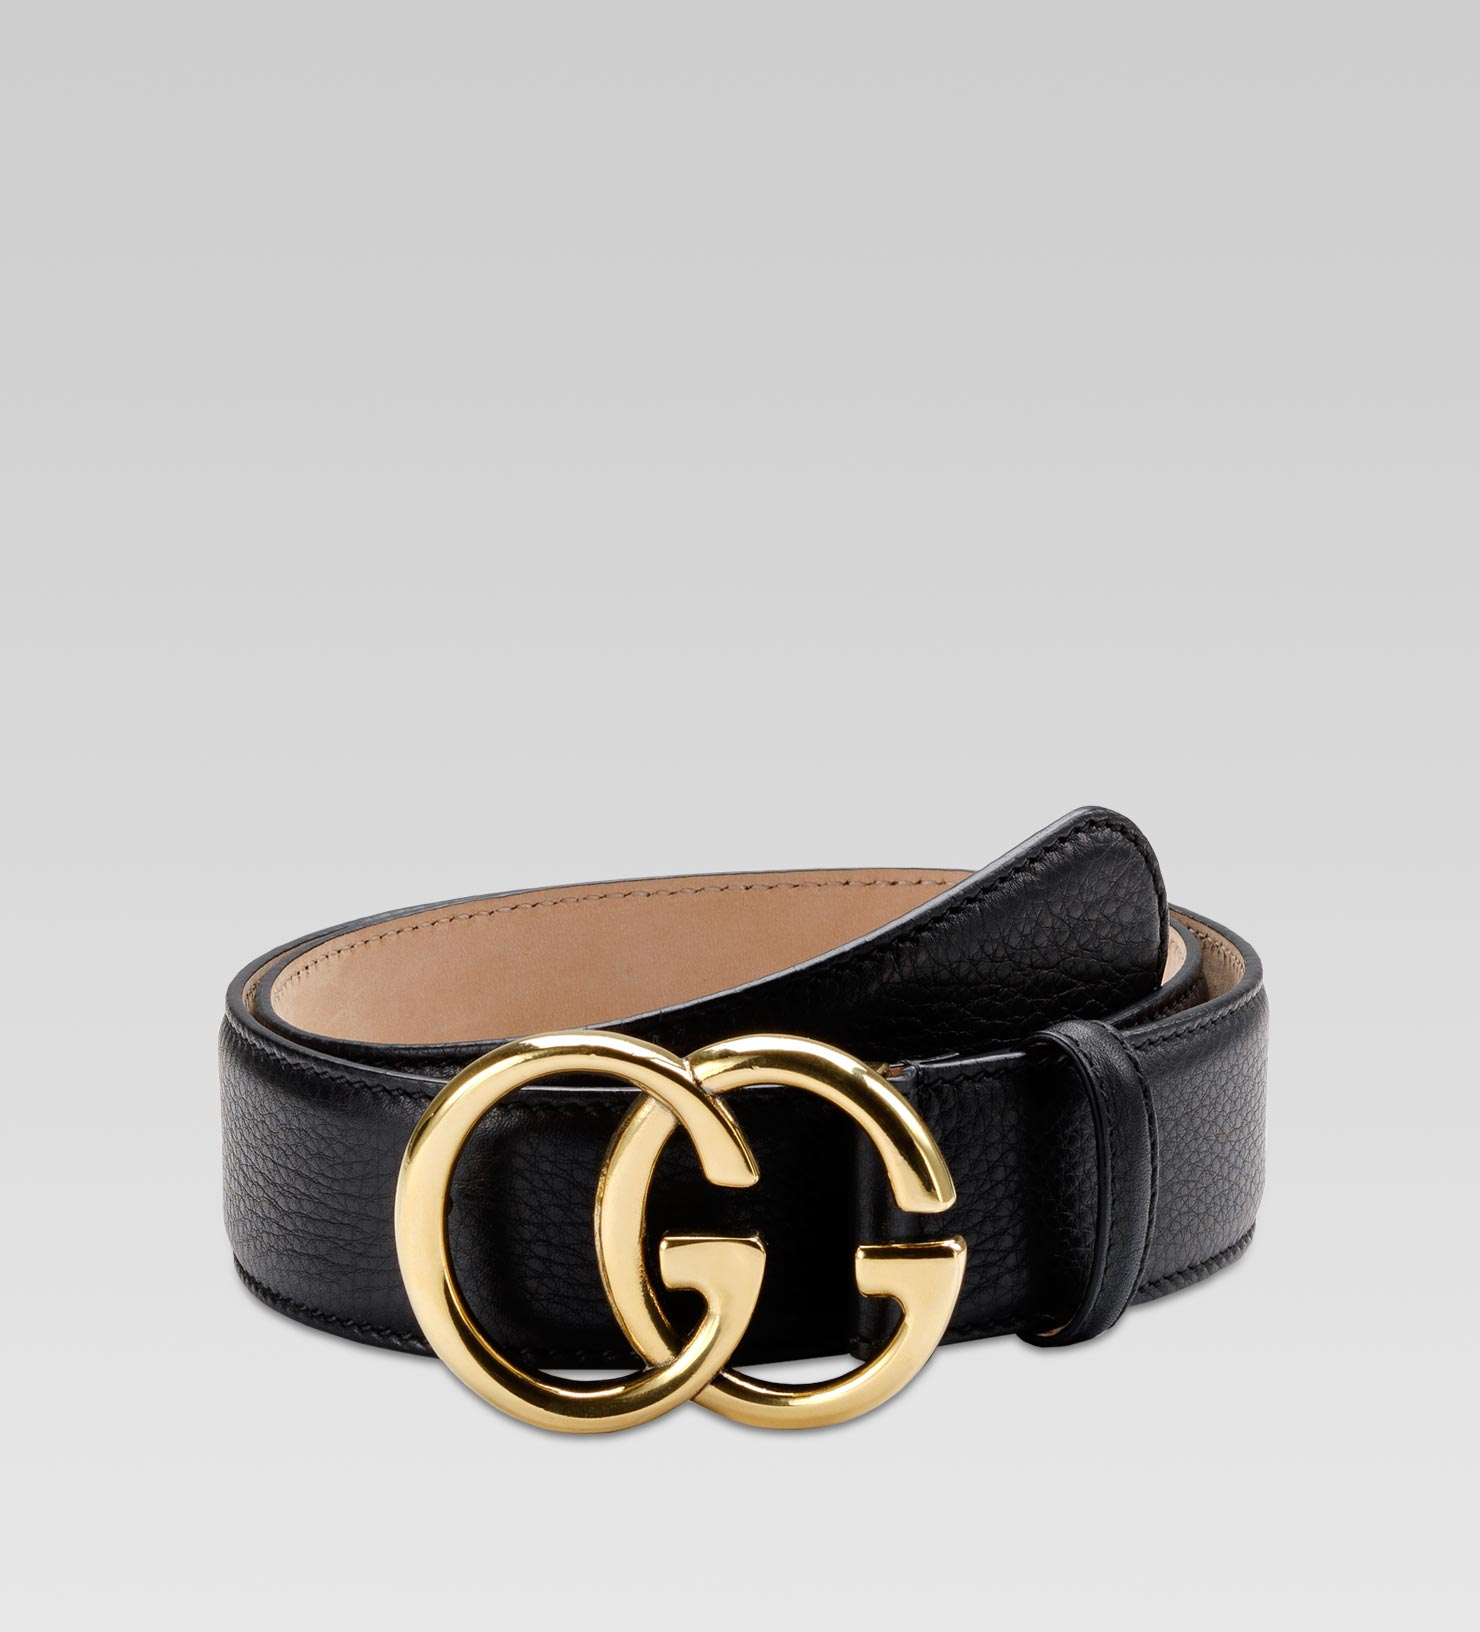 88e24fea782 Gucci Belt With Double G Buckle in Black - Lyst